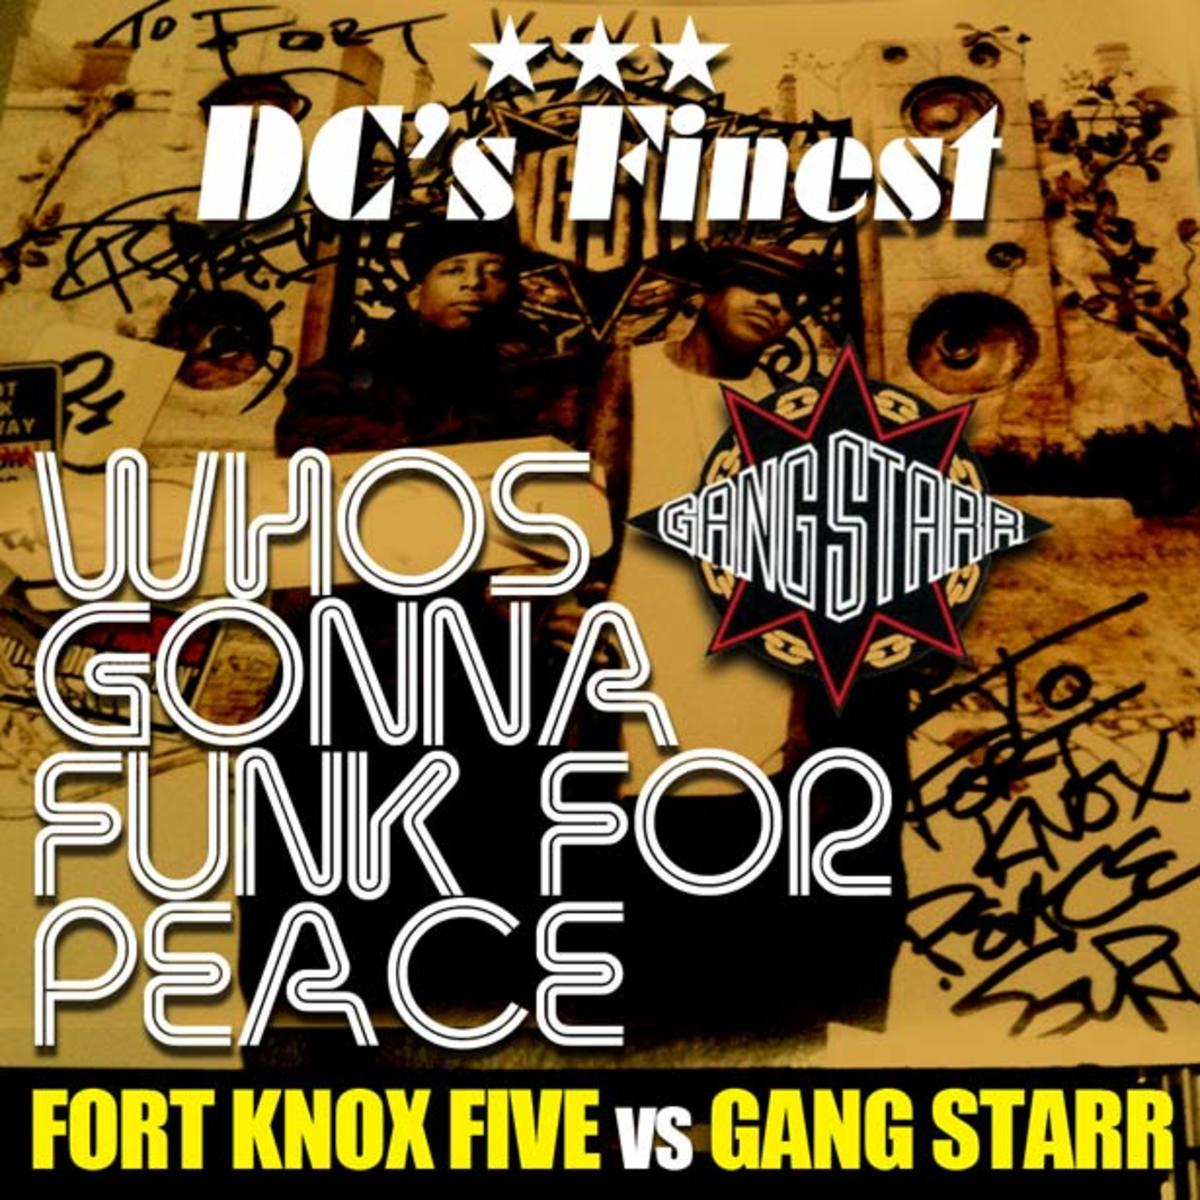 EDM Download: Fort Knox Five vs. Gang Starr Bootleg Mix - File Under Funky Breakbeat